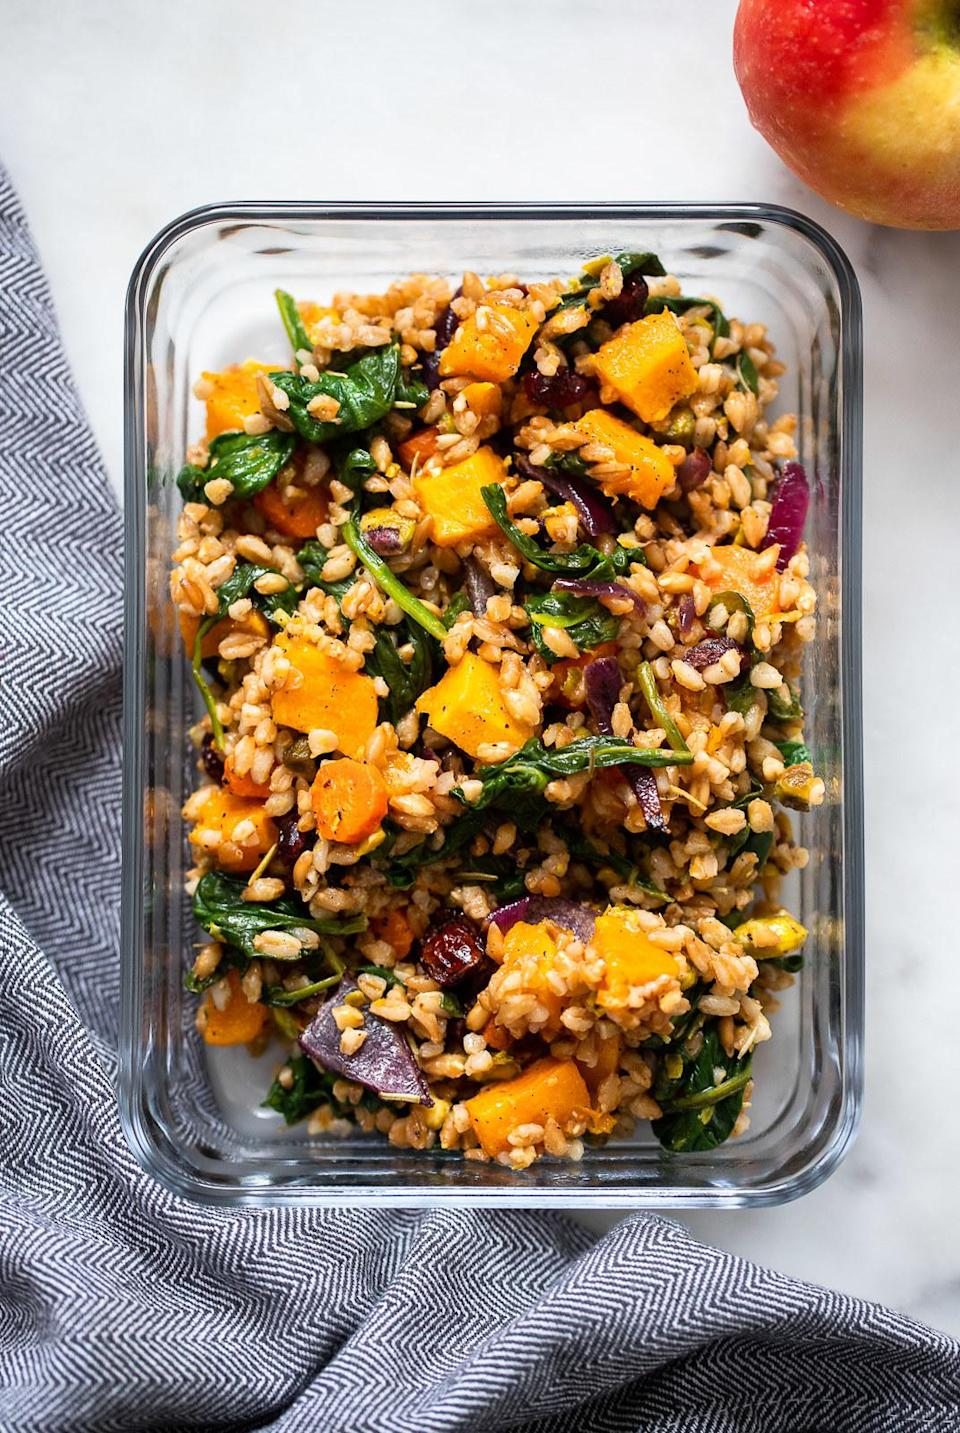 Farro salad with roasted root vegetables.